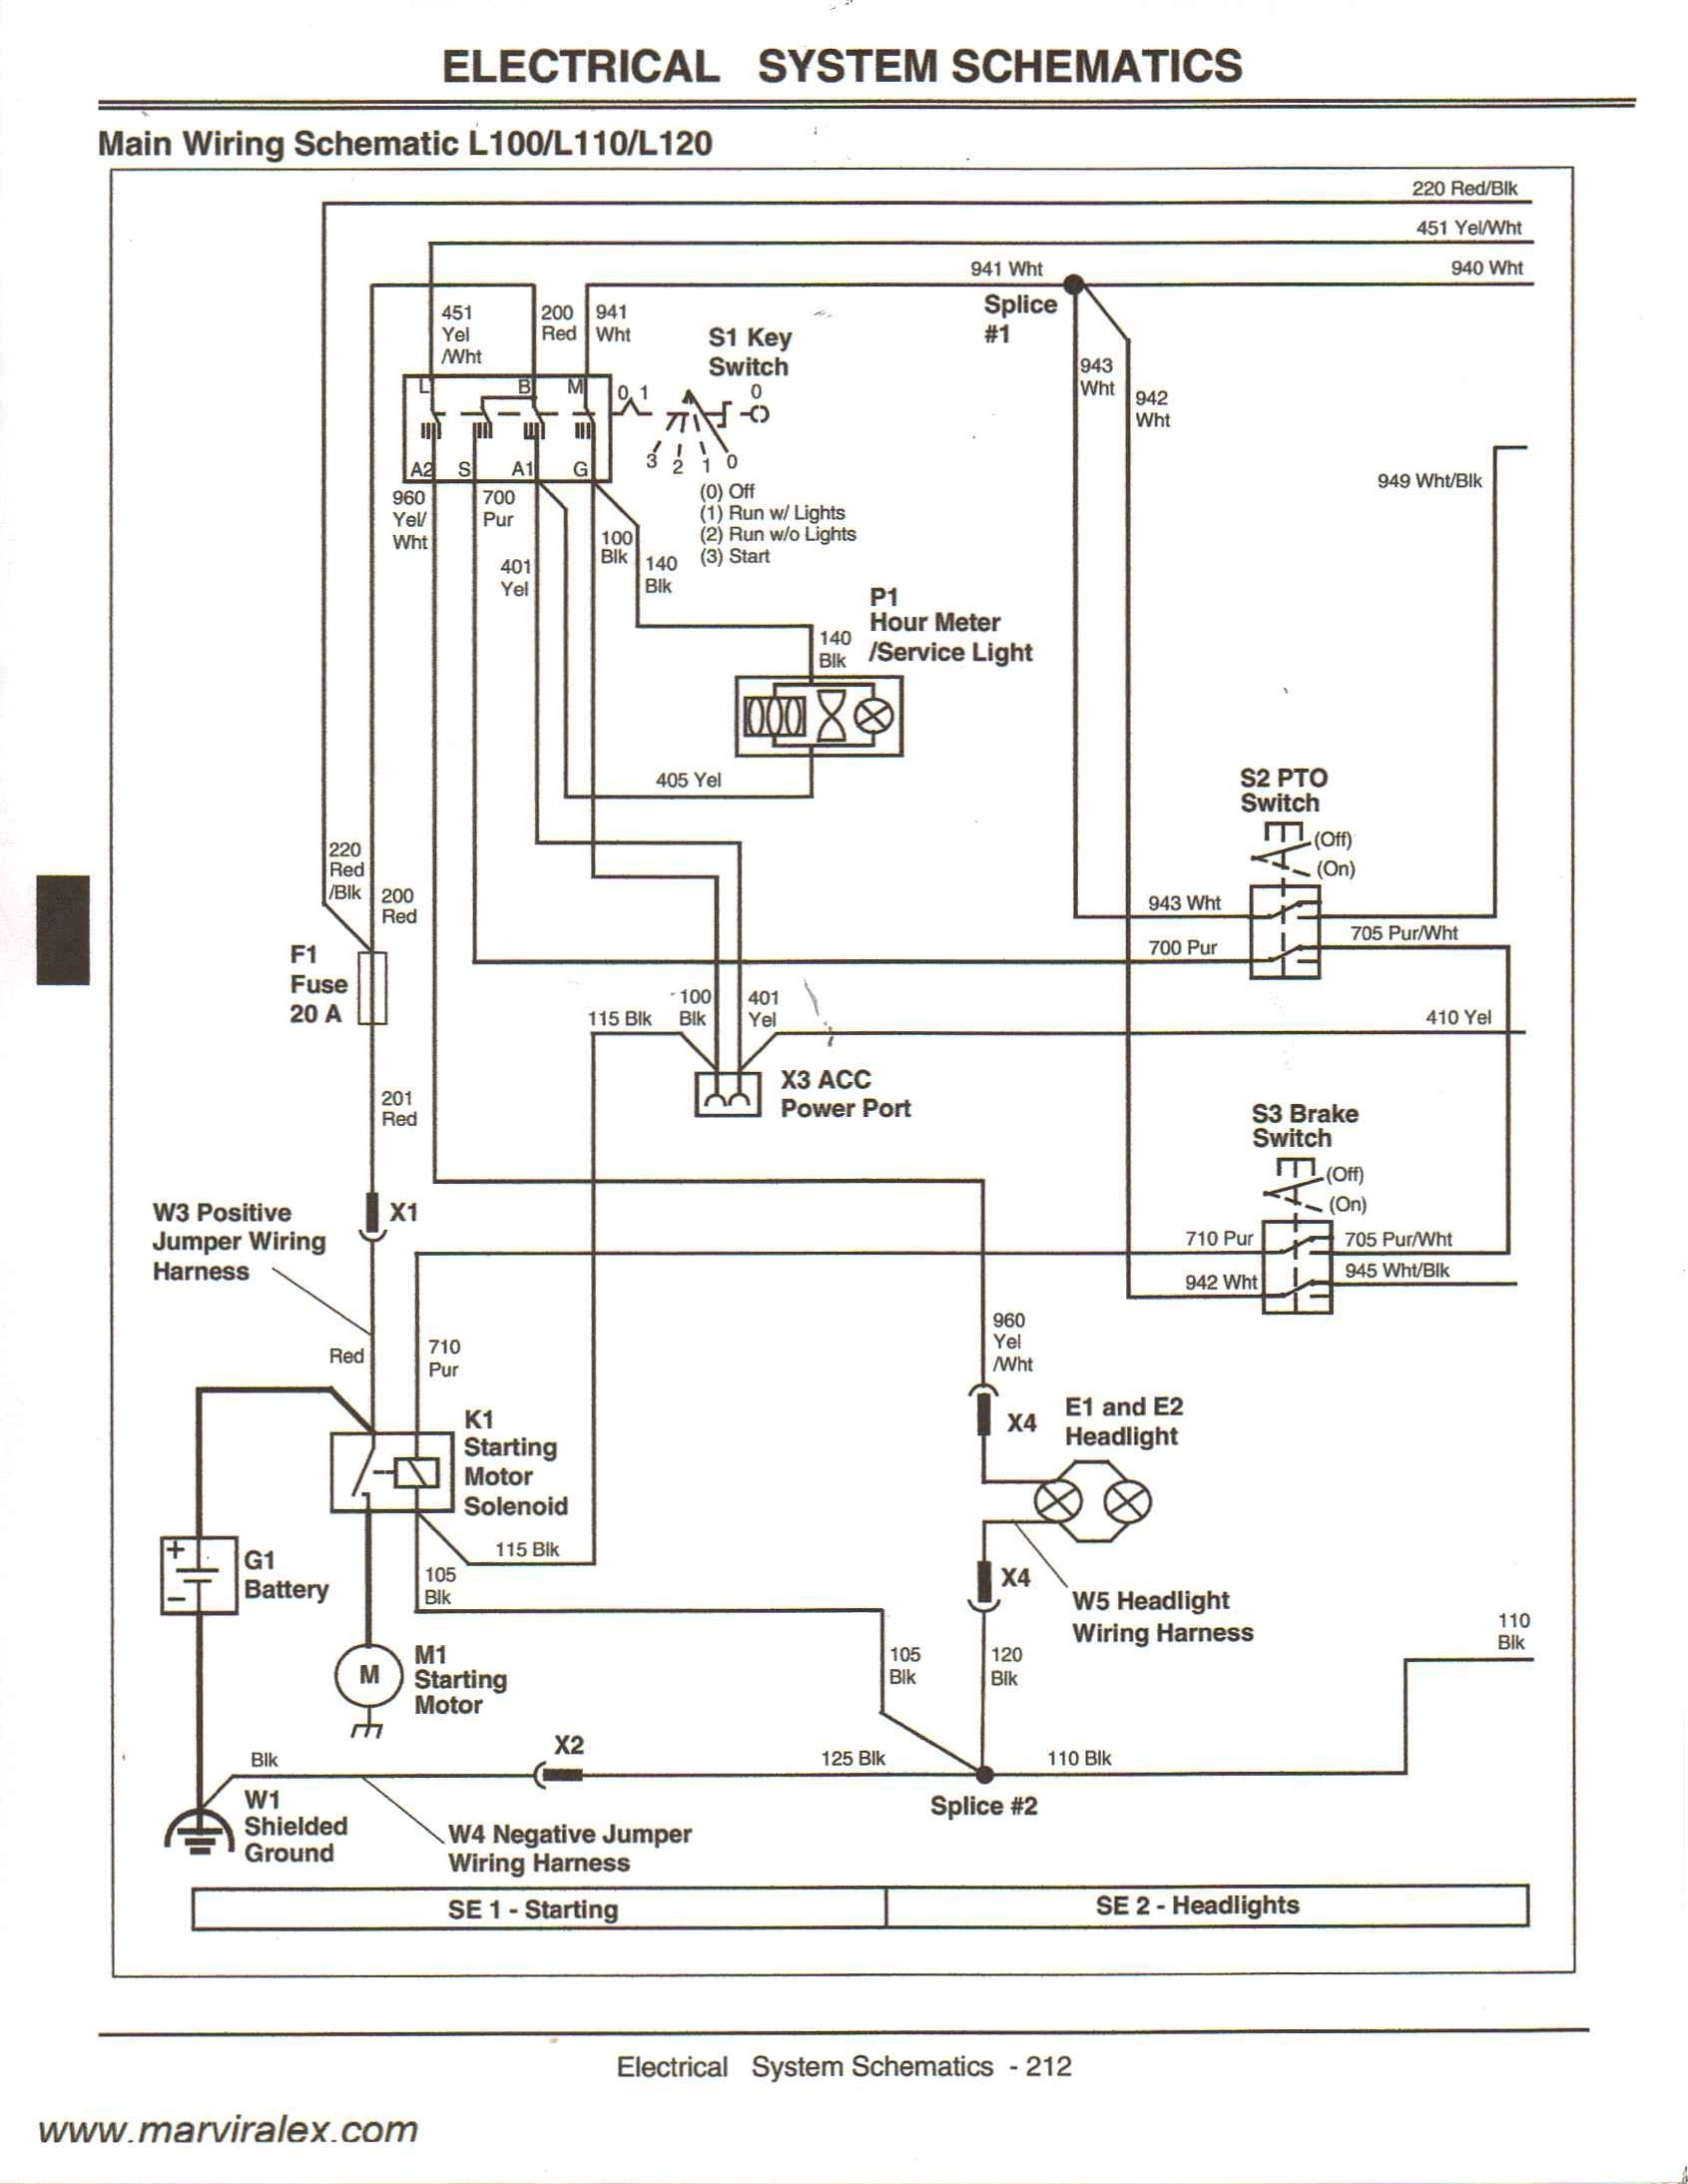 wiring diagram for john deere 1200a wiring diagram for john deere g